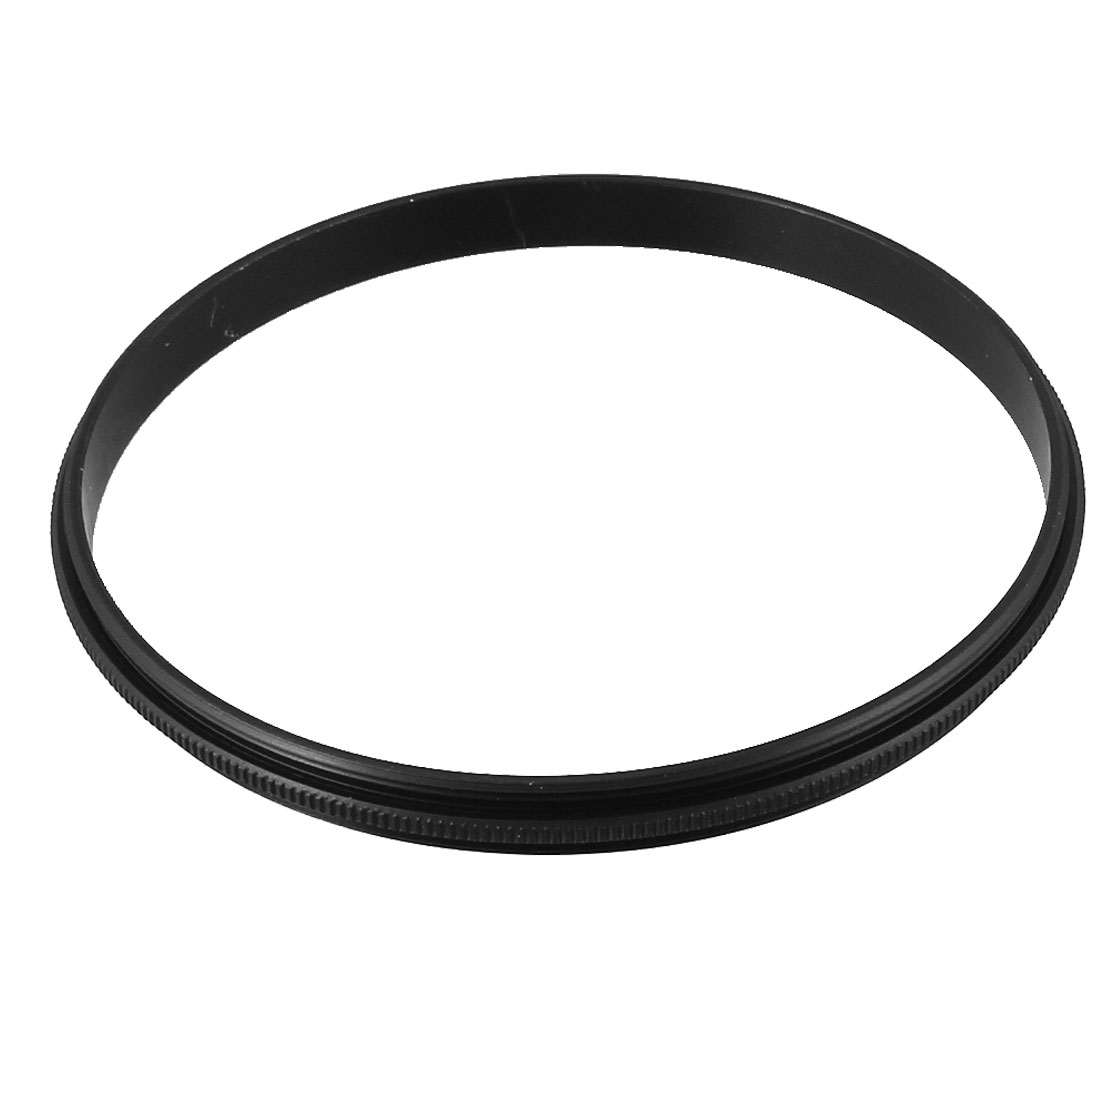 77mm-77mm 77mm to 77mm Male to Male Step Ring Adapter Black for Camera